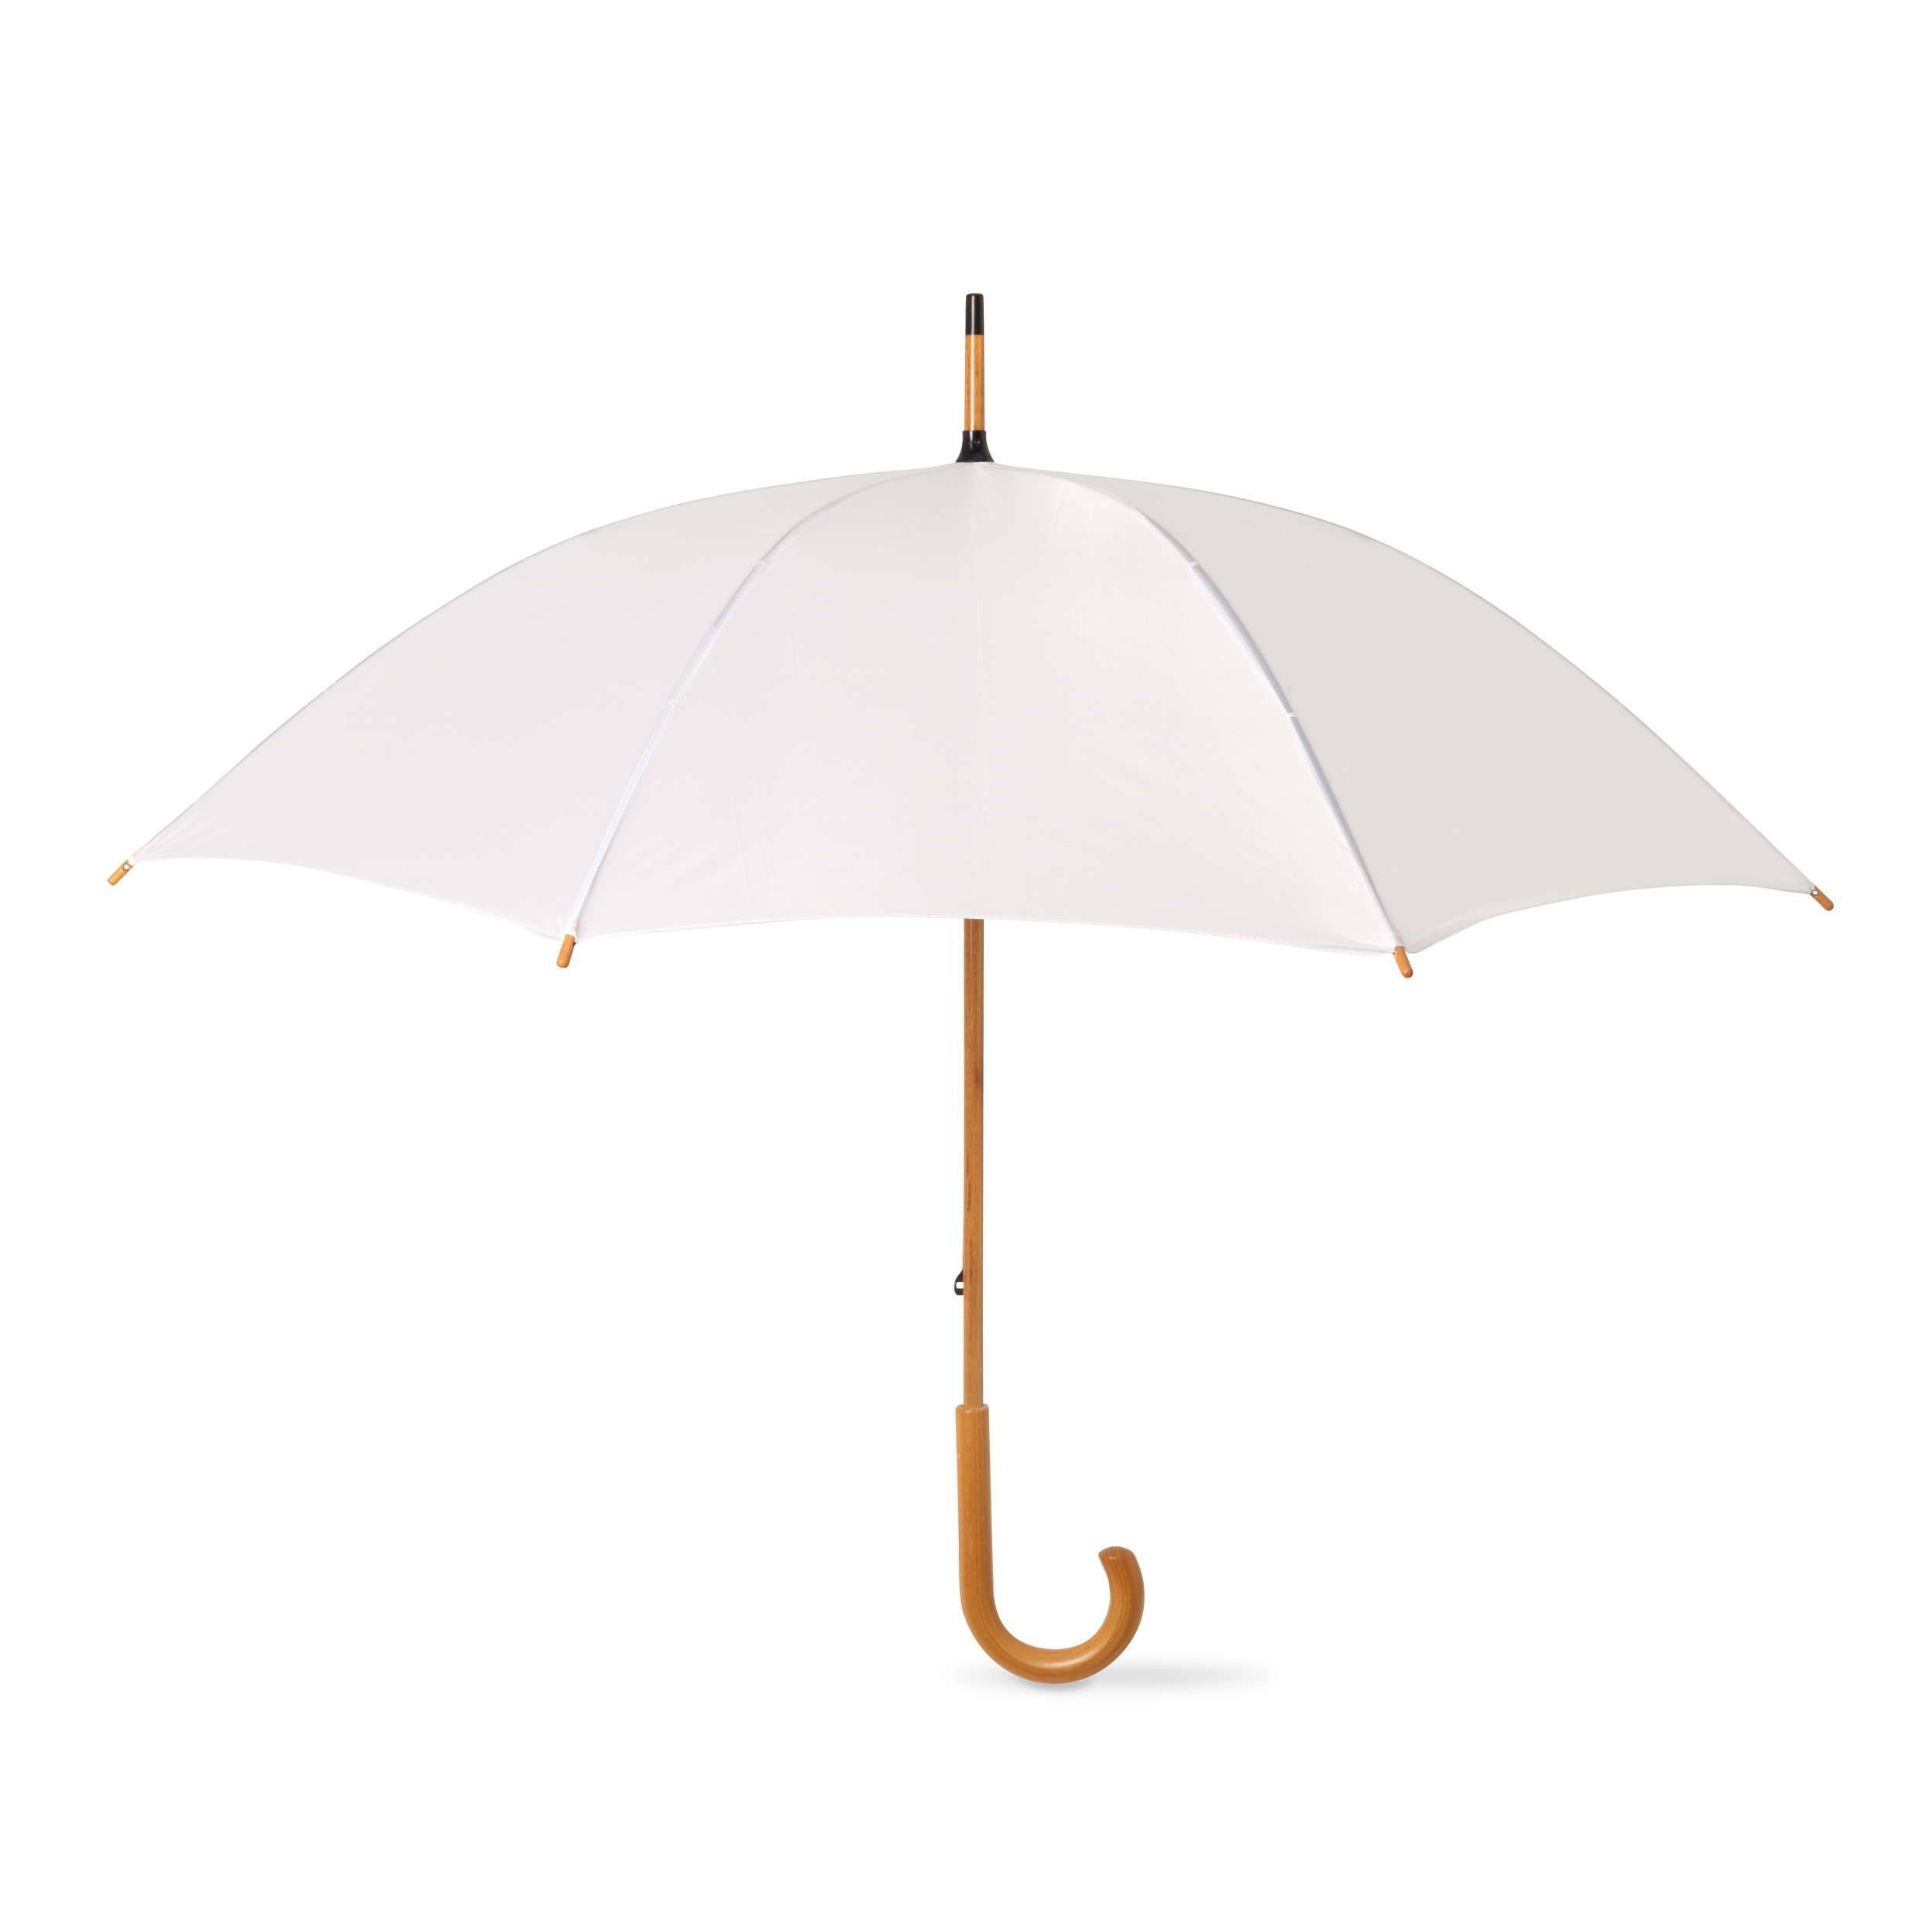 2-Stylish-Umbrellas-with-crooked-wooden-handle-Bride-Wedding-Groom-Walking